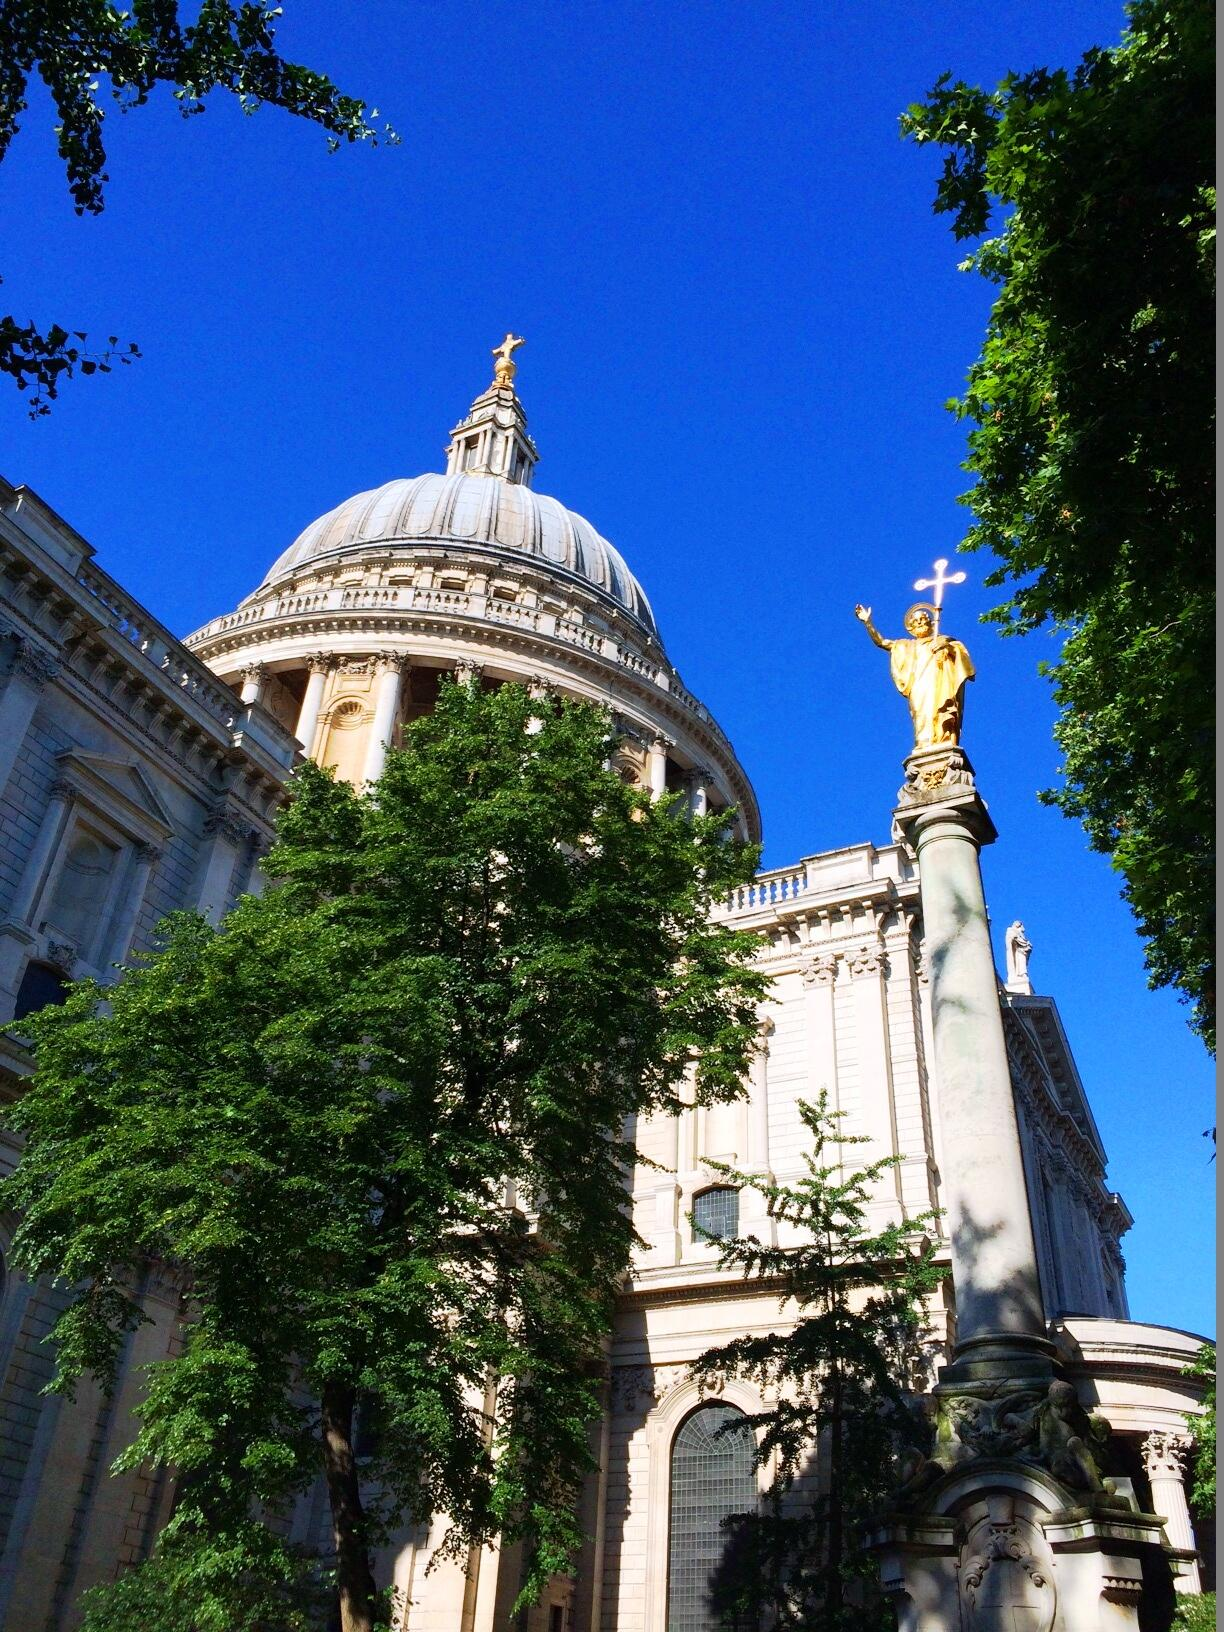 RT @StPaulsLondon: As #WorldCup matches continue in Brazil's largest city, our very own São Paulo glistens in London's morning sun. http://t.co/27bedkVH6k